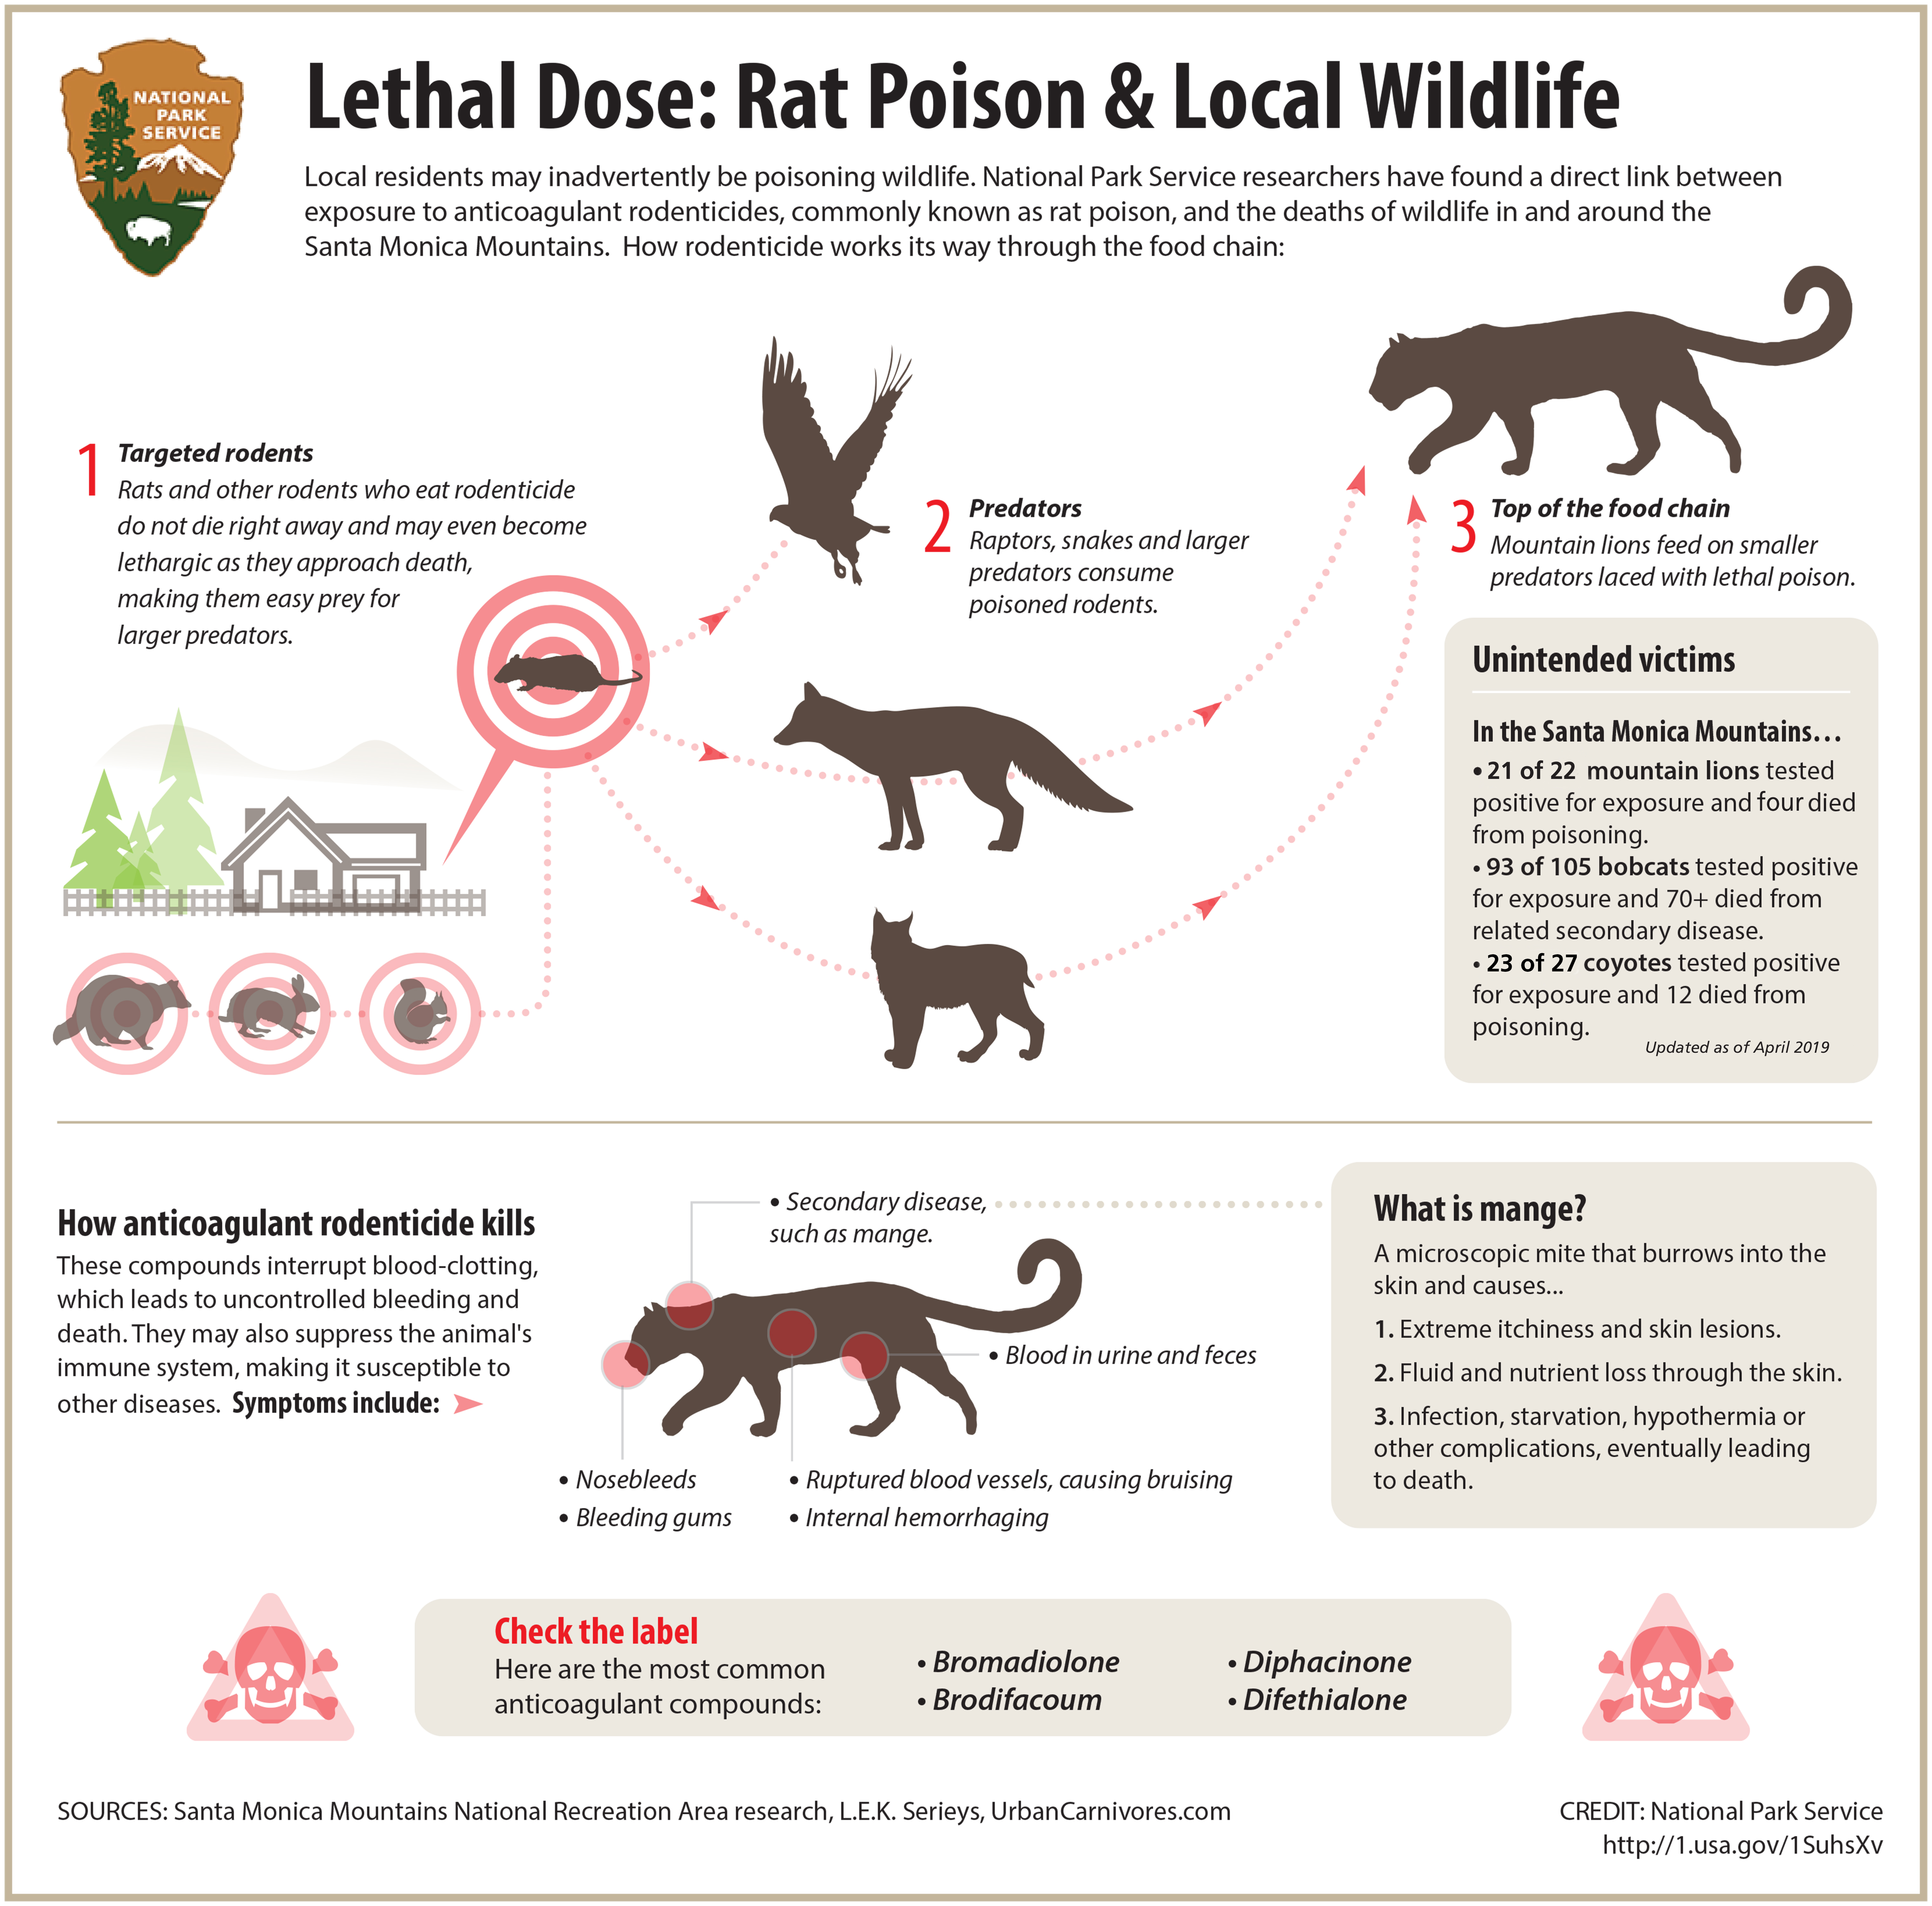 Avoiding Unintentional Poisoning - Santa Monica Mountains